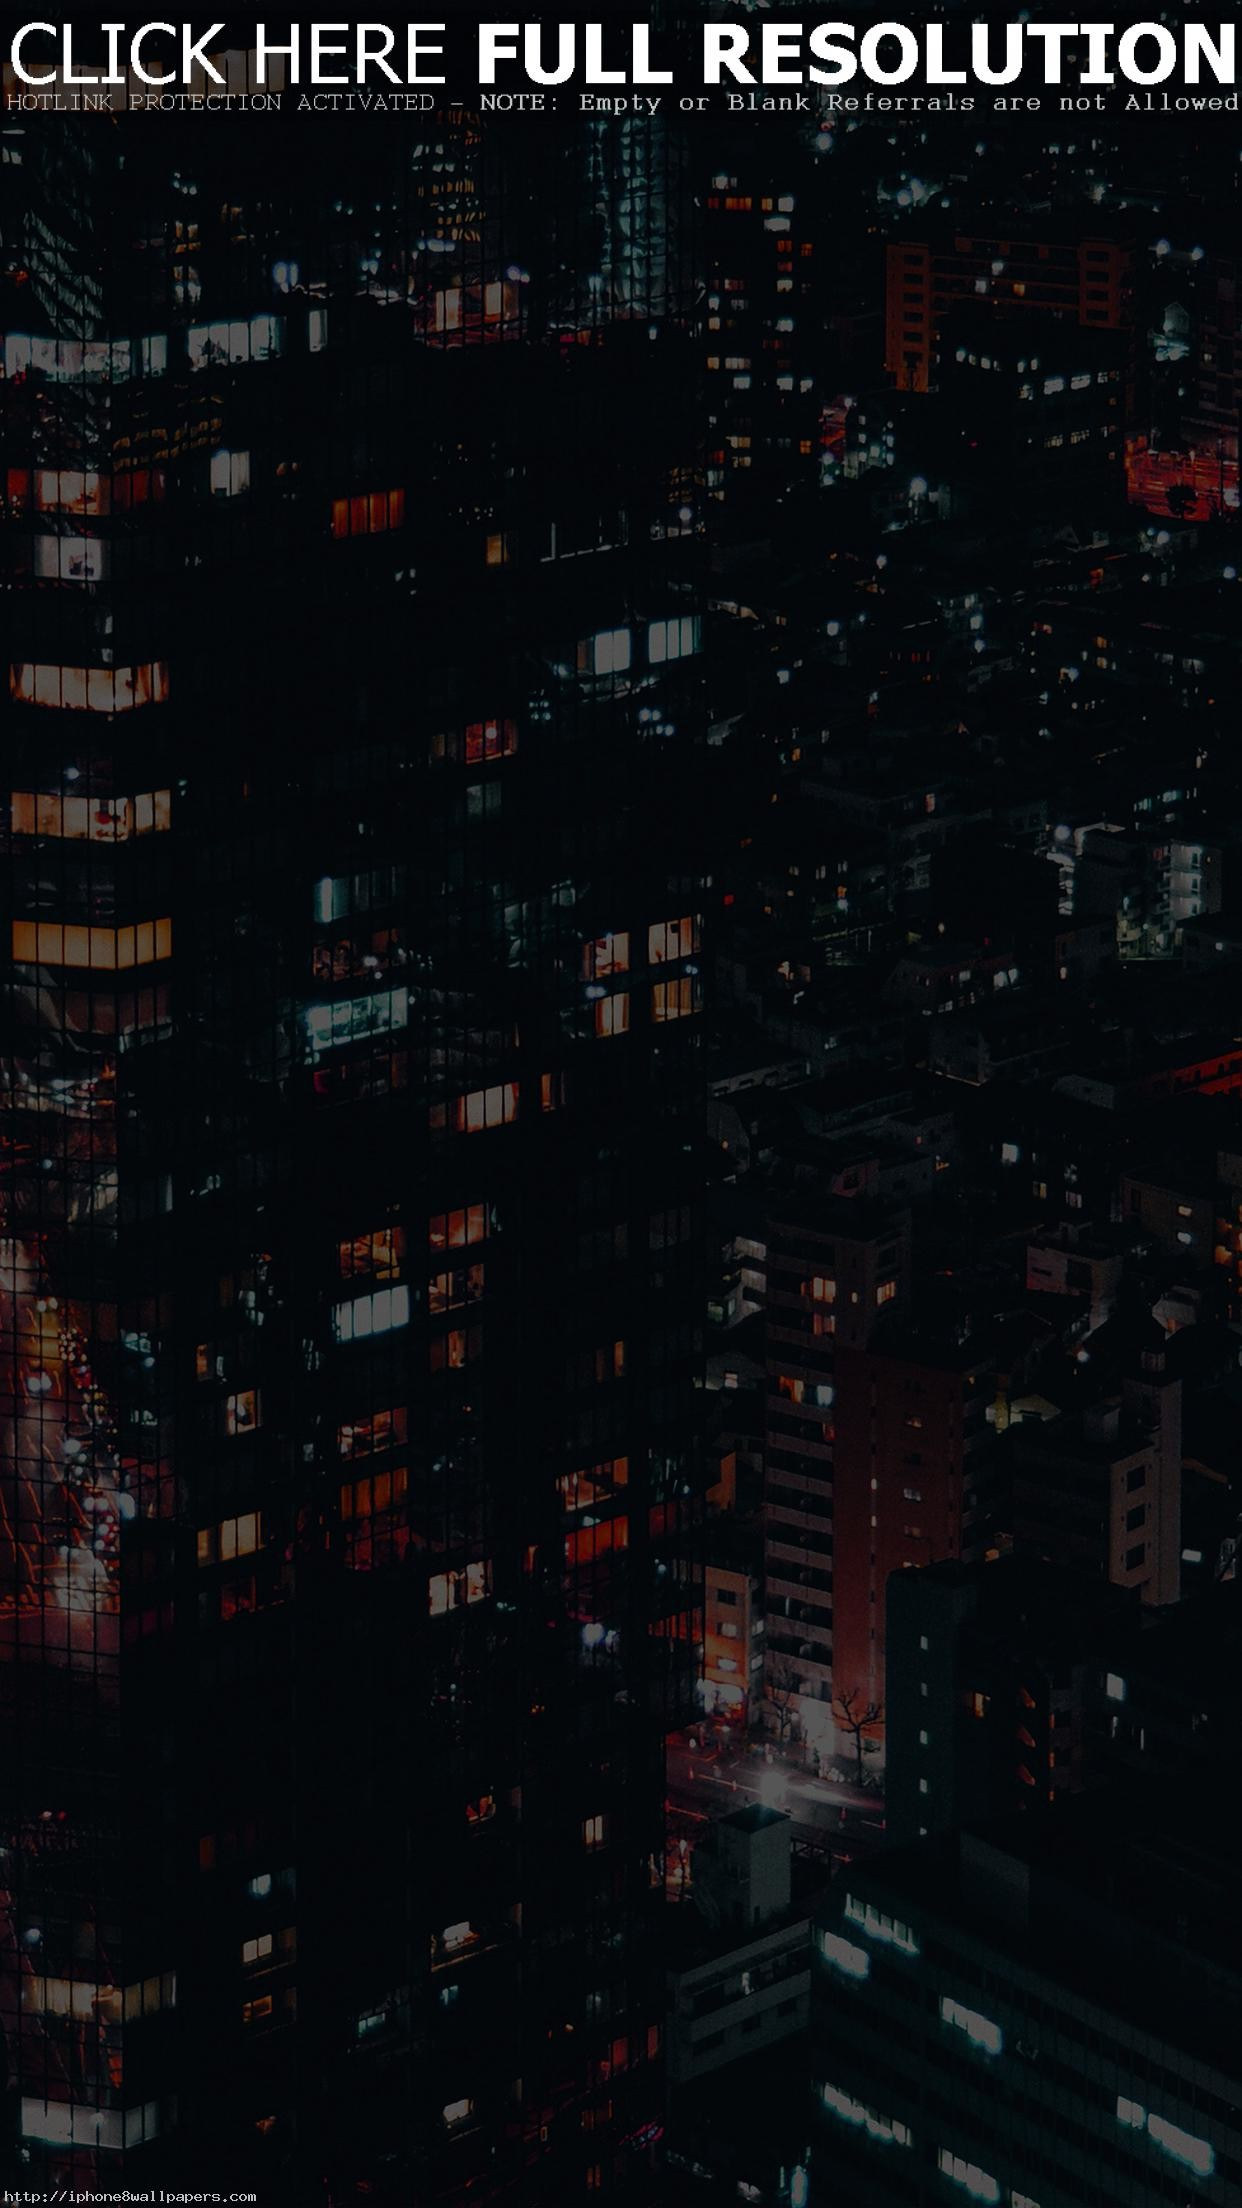 1920x1080 Beautiful City Night View Background Wallpaper Wide Wallpapers1280x8001440x9001680x1050